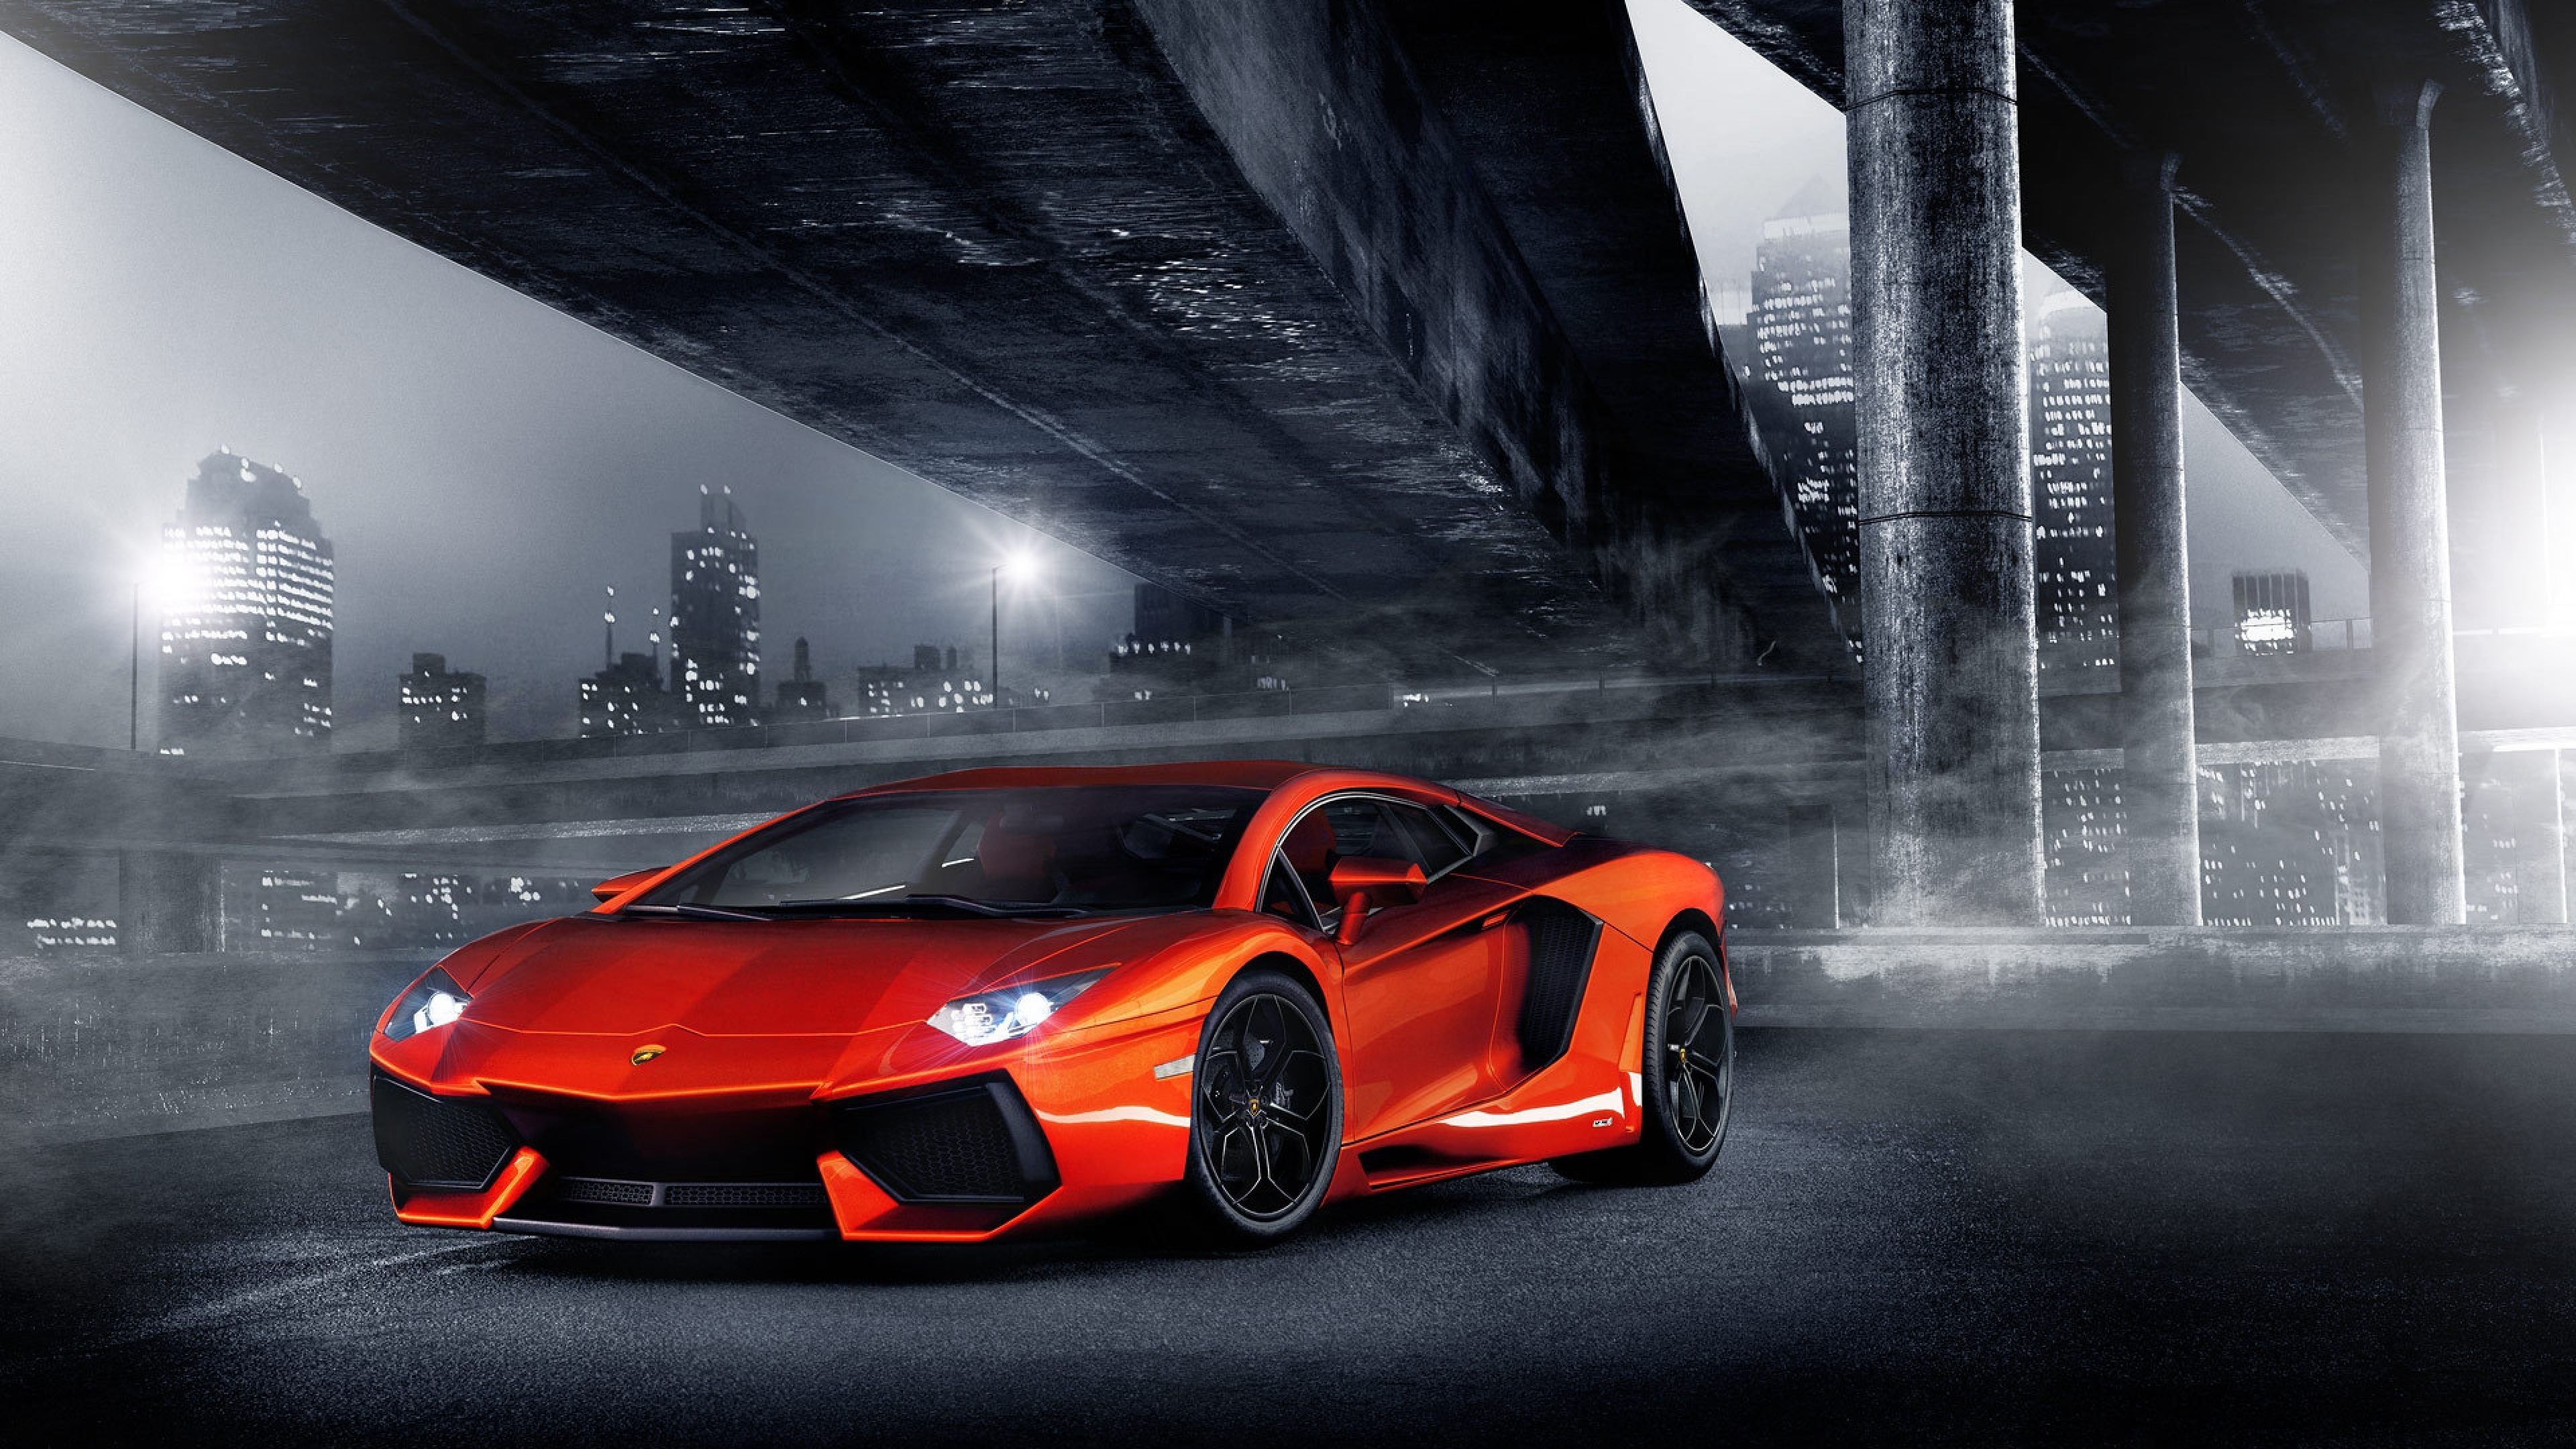 HD Lamborghini Aventador Sport Car Wallpaper HD Full Size .